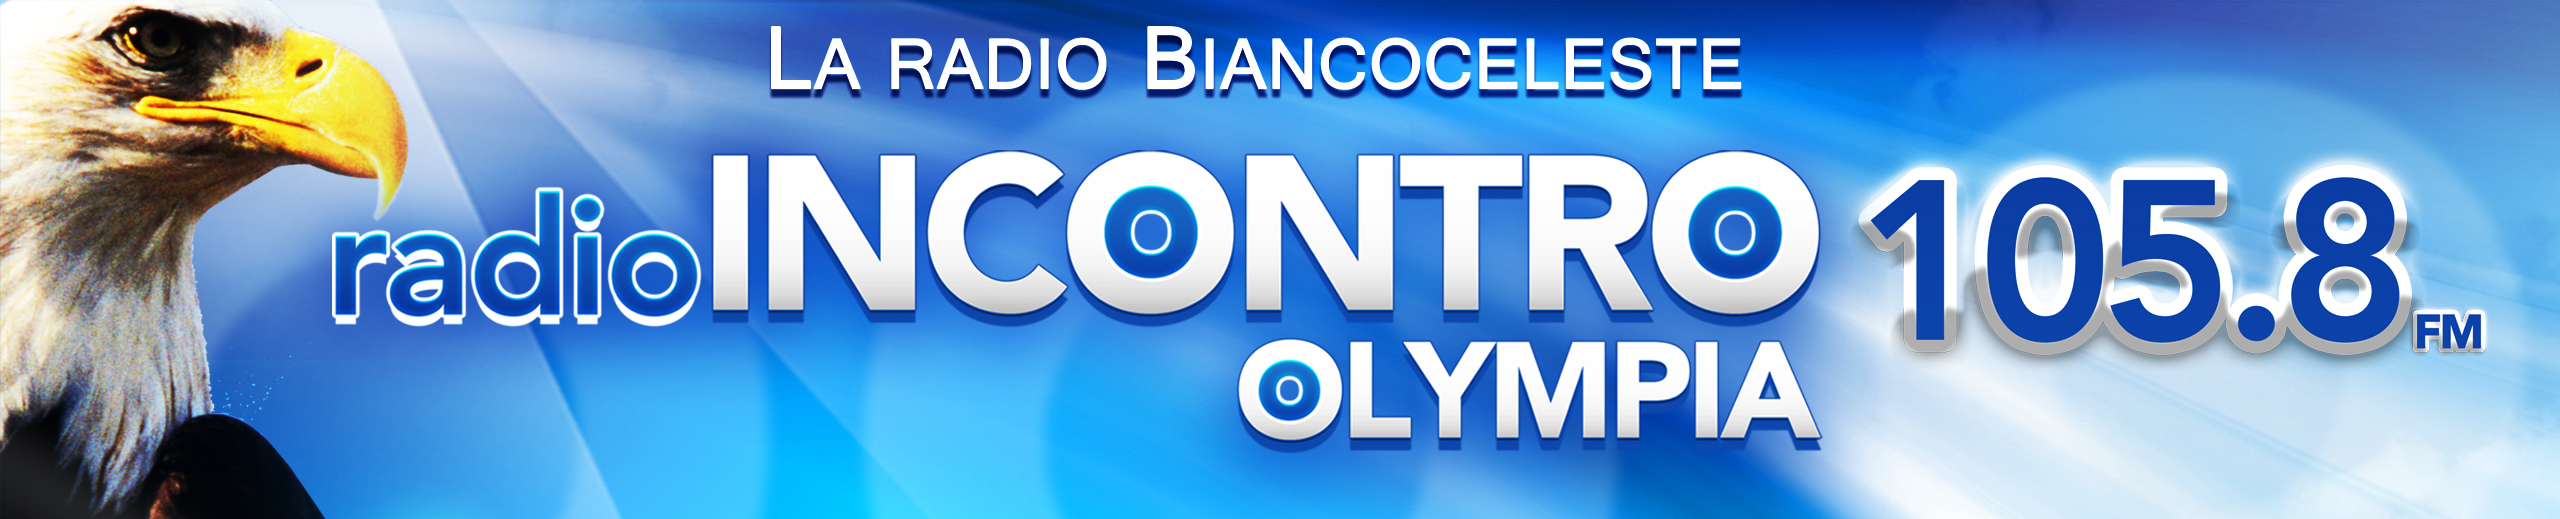 http://www.radioolympia.it/assets/images/header_olympia.jpg